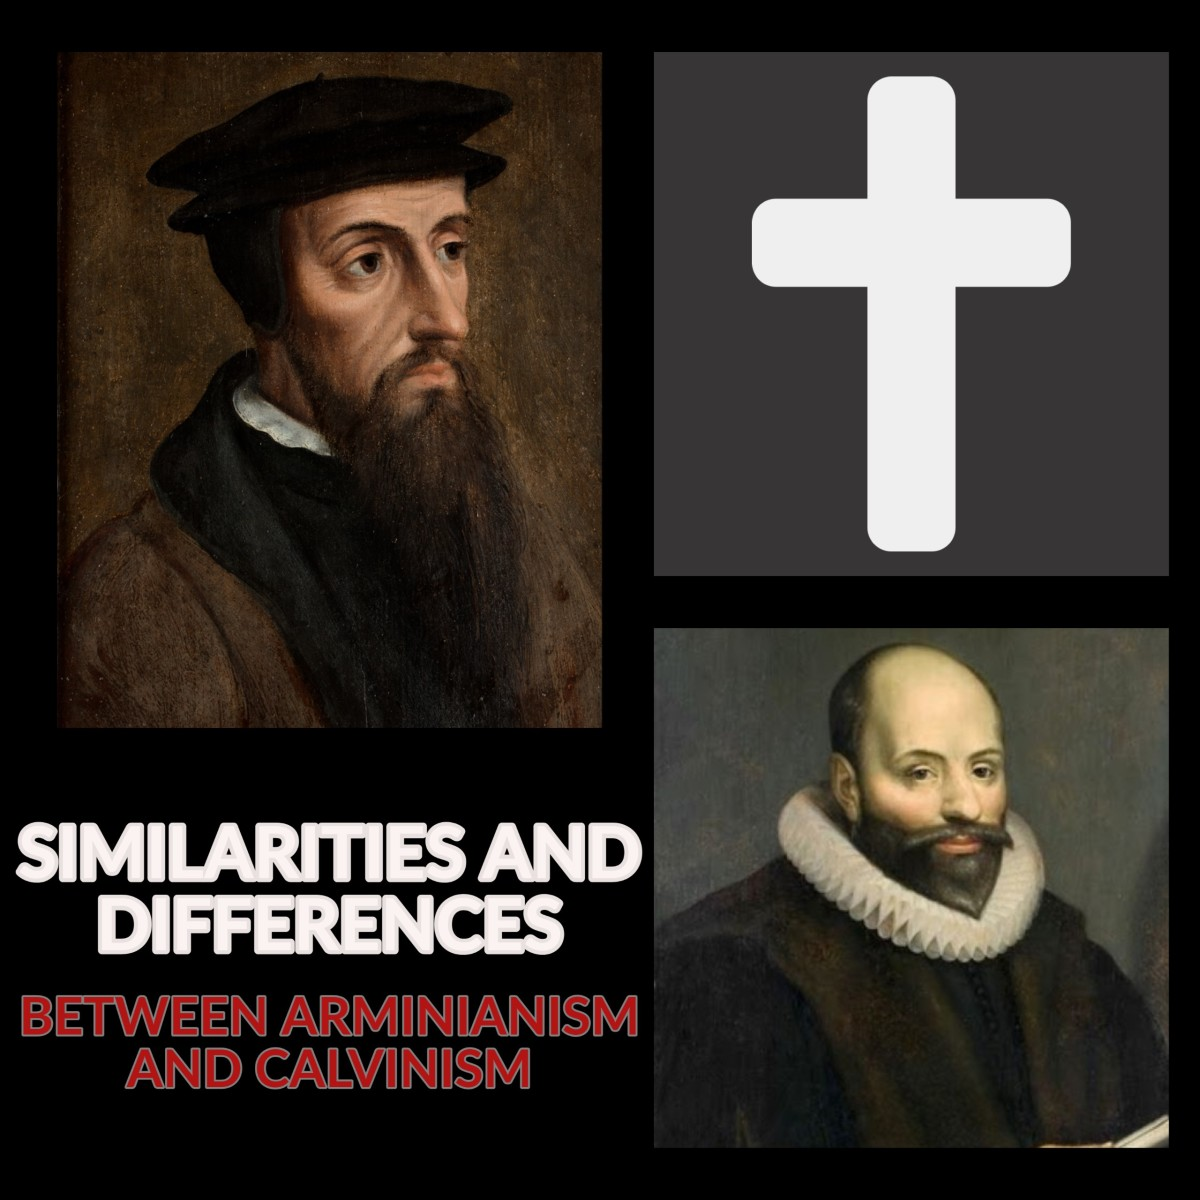 What are the similarities and differences of Arminianism and Calvinism?